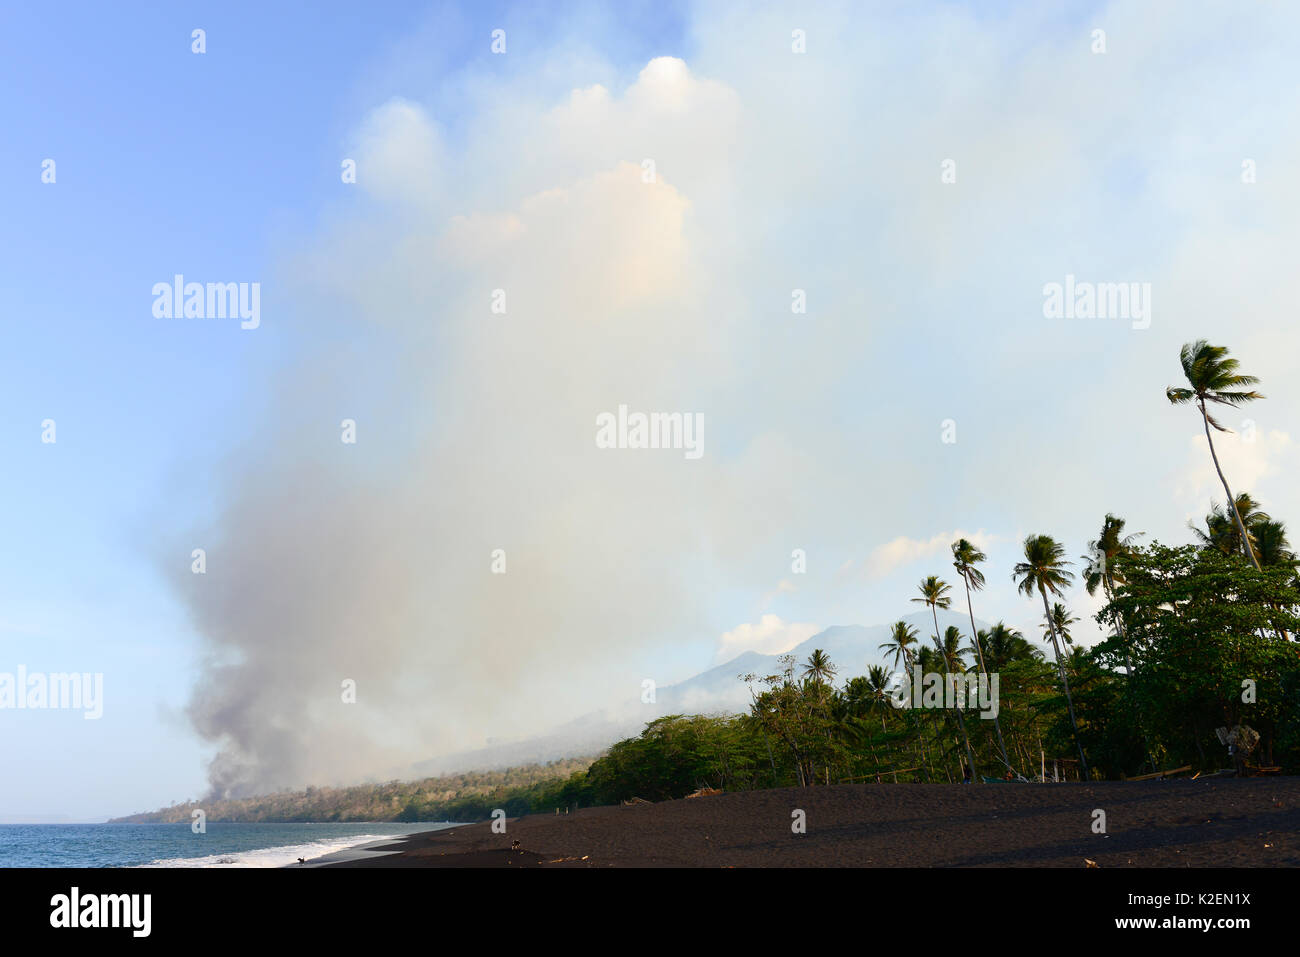 Fire inside the Tangkoko National Park. The fire lasted two weeks, until it was extinguished by a storm from the sea. Sulawesi, Indonesia, October 2015. - Stock Image